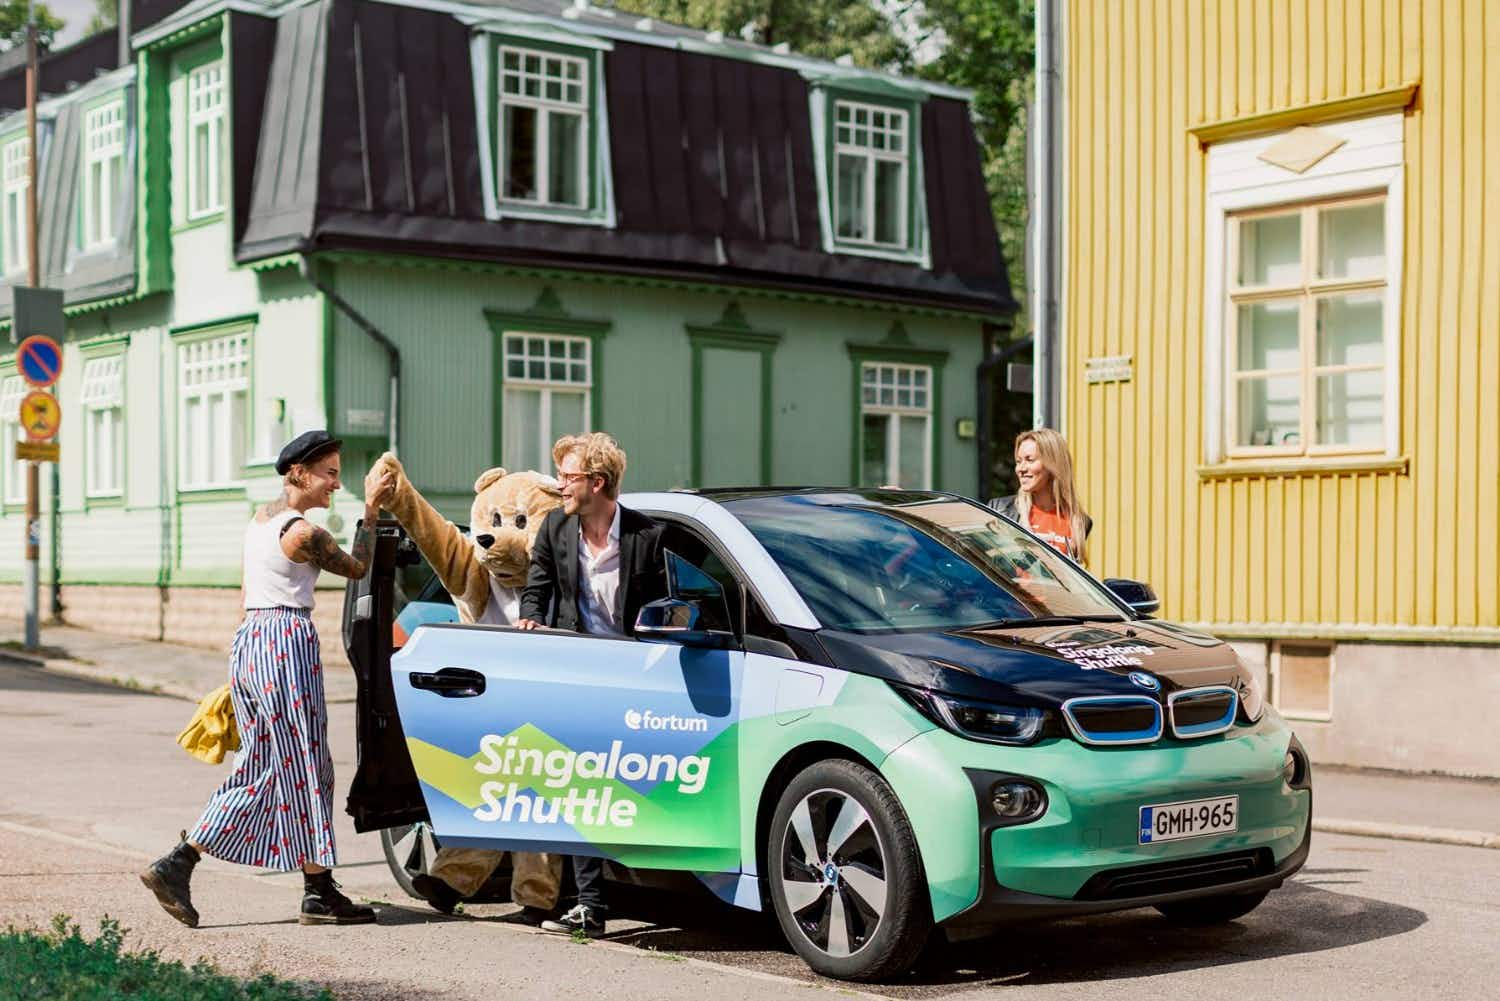 Passengers can pay for cab rides in Finland by singing karaoke